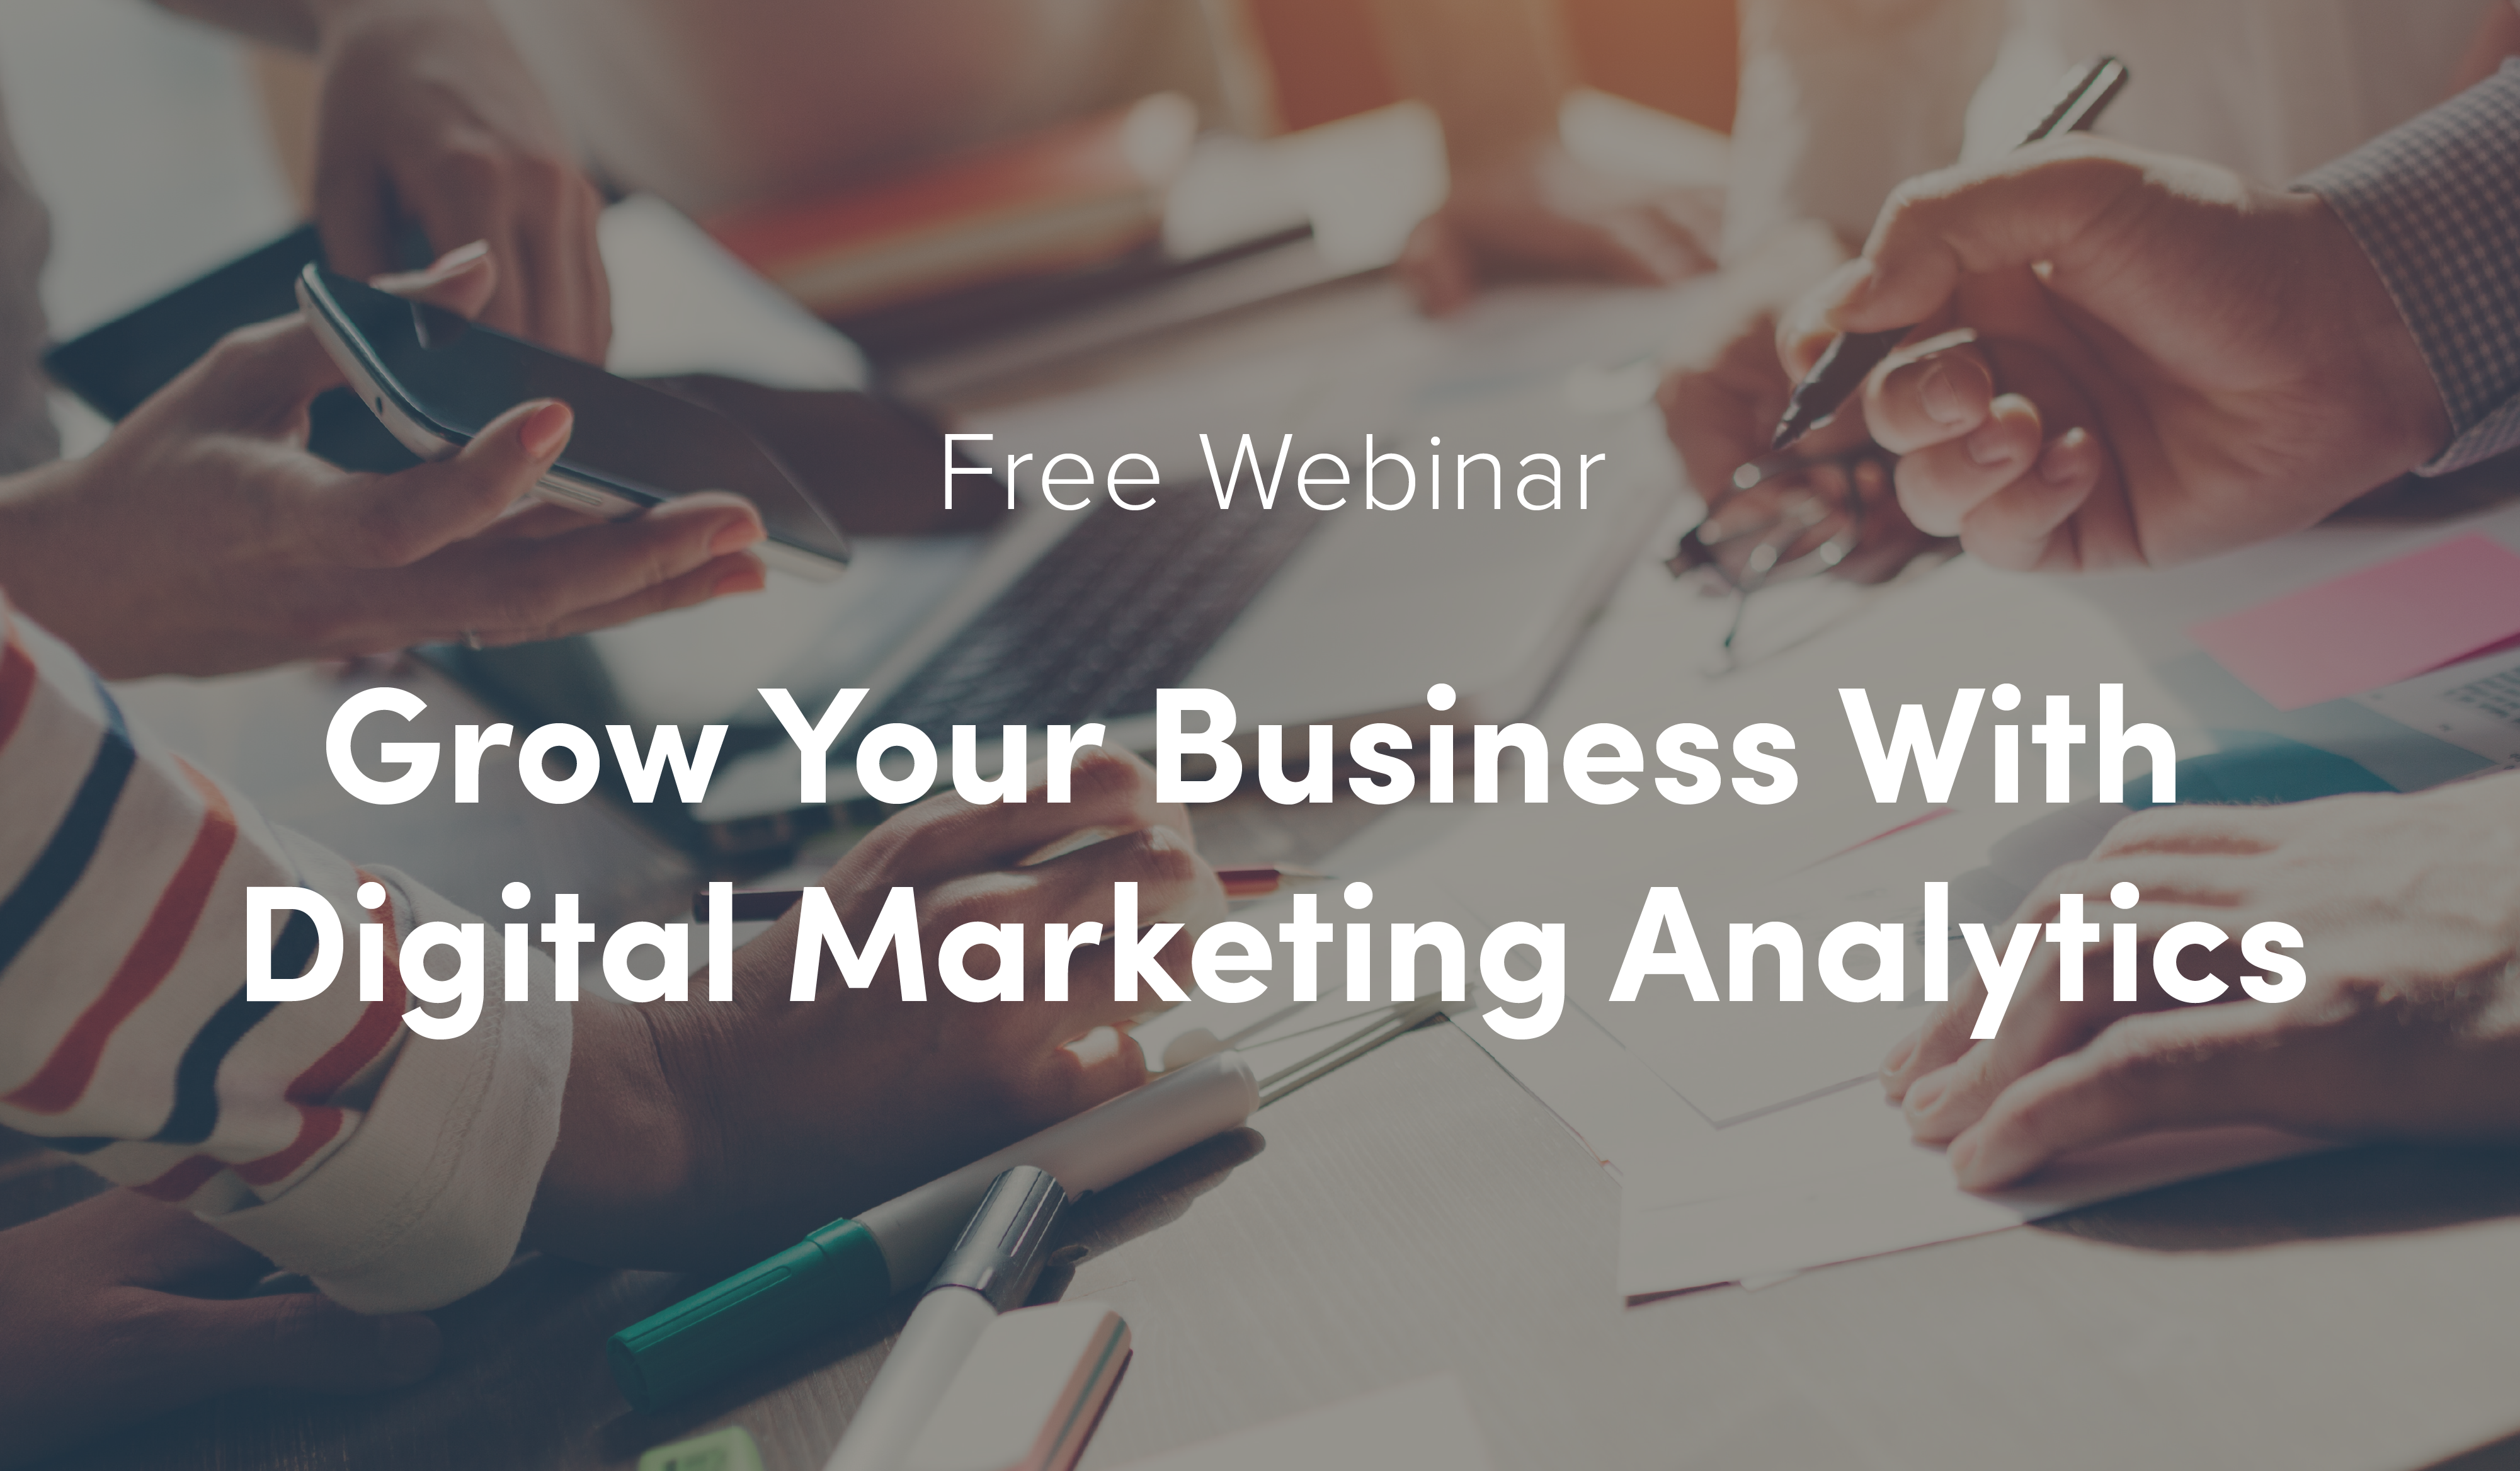 Free Webinar: How to Grow Your Business With Digital Marketing Analytics